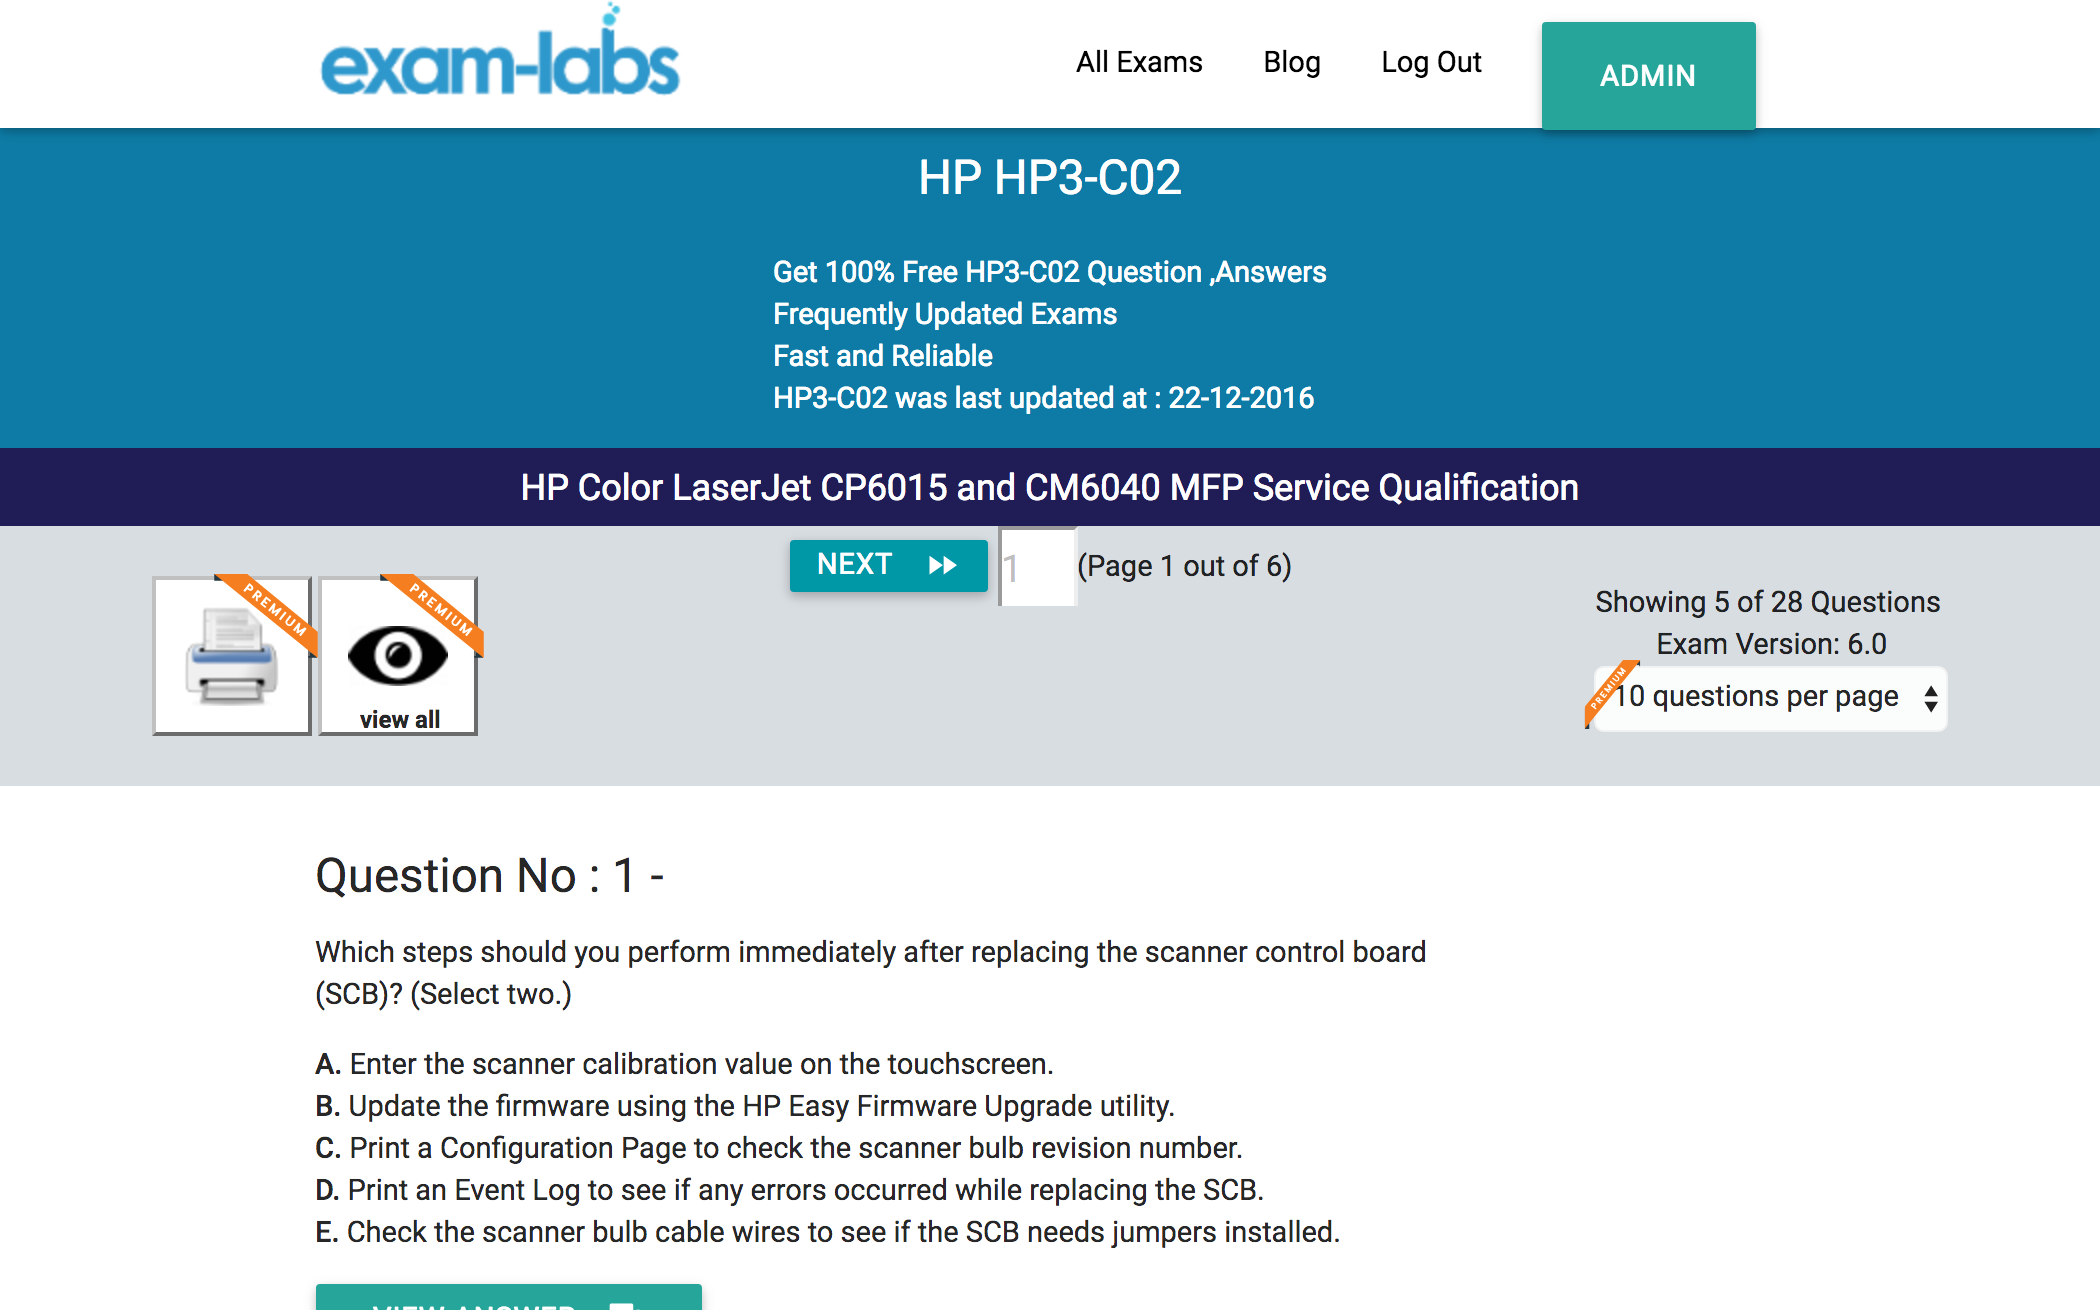 hp3 c02 hp real exam questions 100 free exam labs